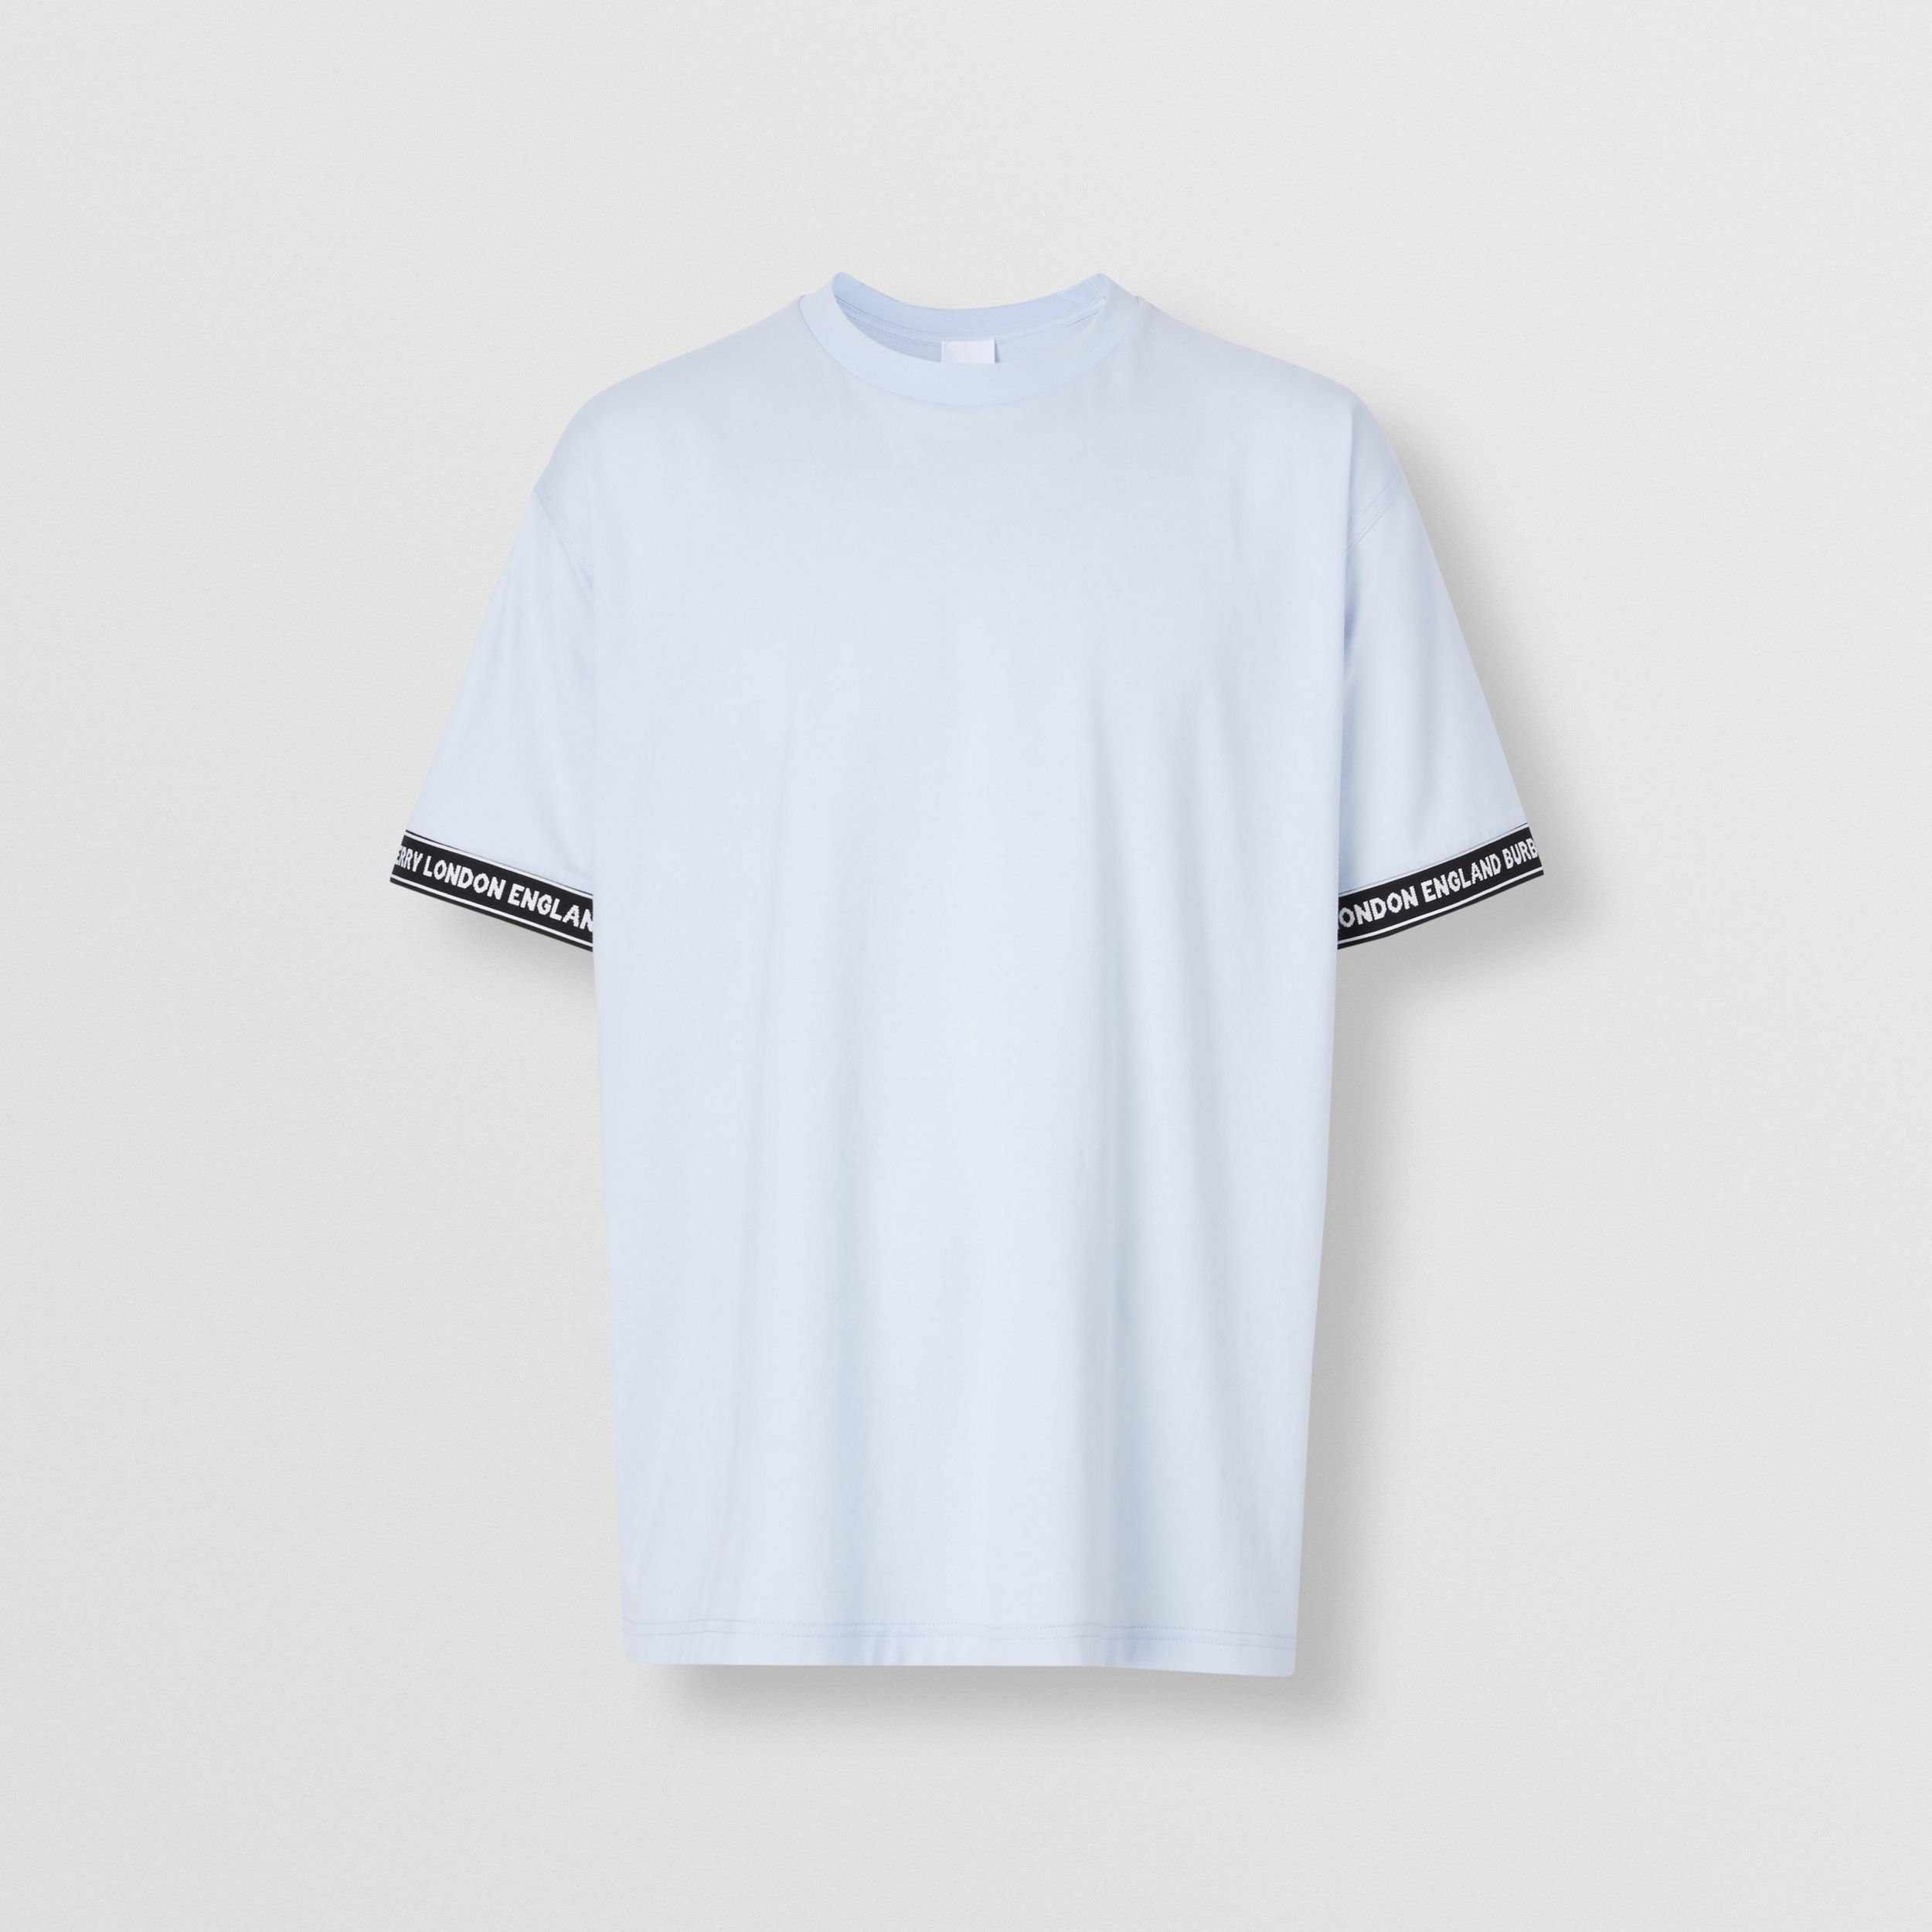 Logo Tape Cotton Oversized T-shirt in Pale Blue - Men | Burberry - 4